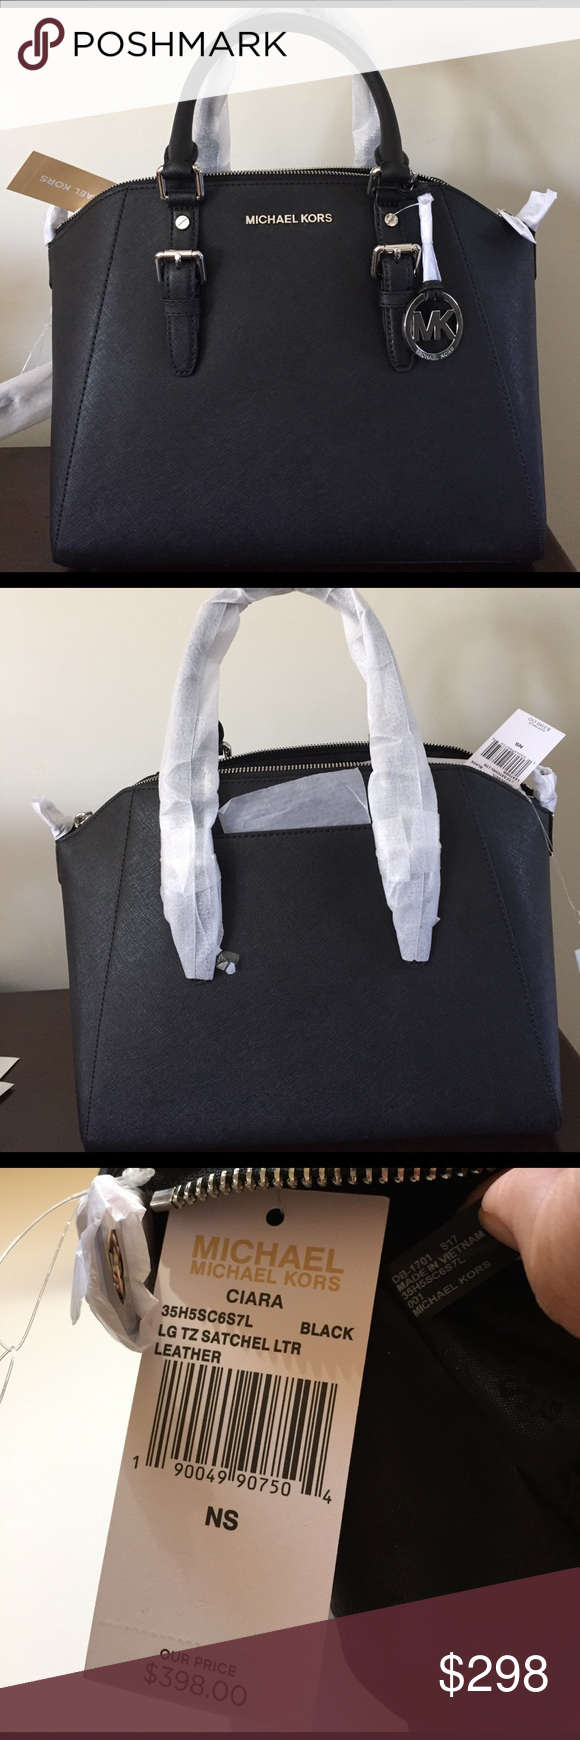 Michael Kors Large Ciara Satchel Beautiful Michael Kors Ciara Large satchel  Include long, adjustable strap. One cell pocket on the outside. 5 inside pockets including one with zipper. KORS Michael Kors Bags Satchels